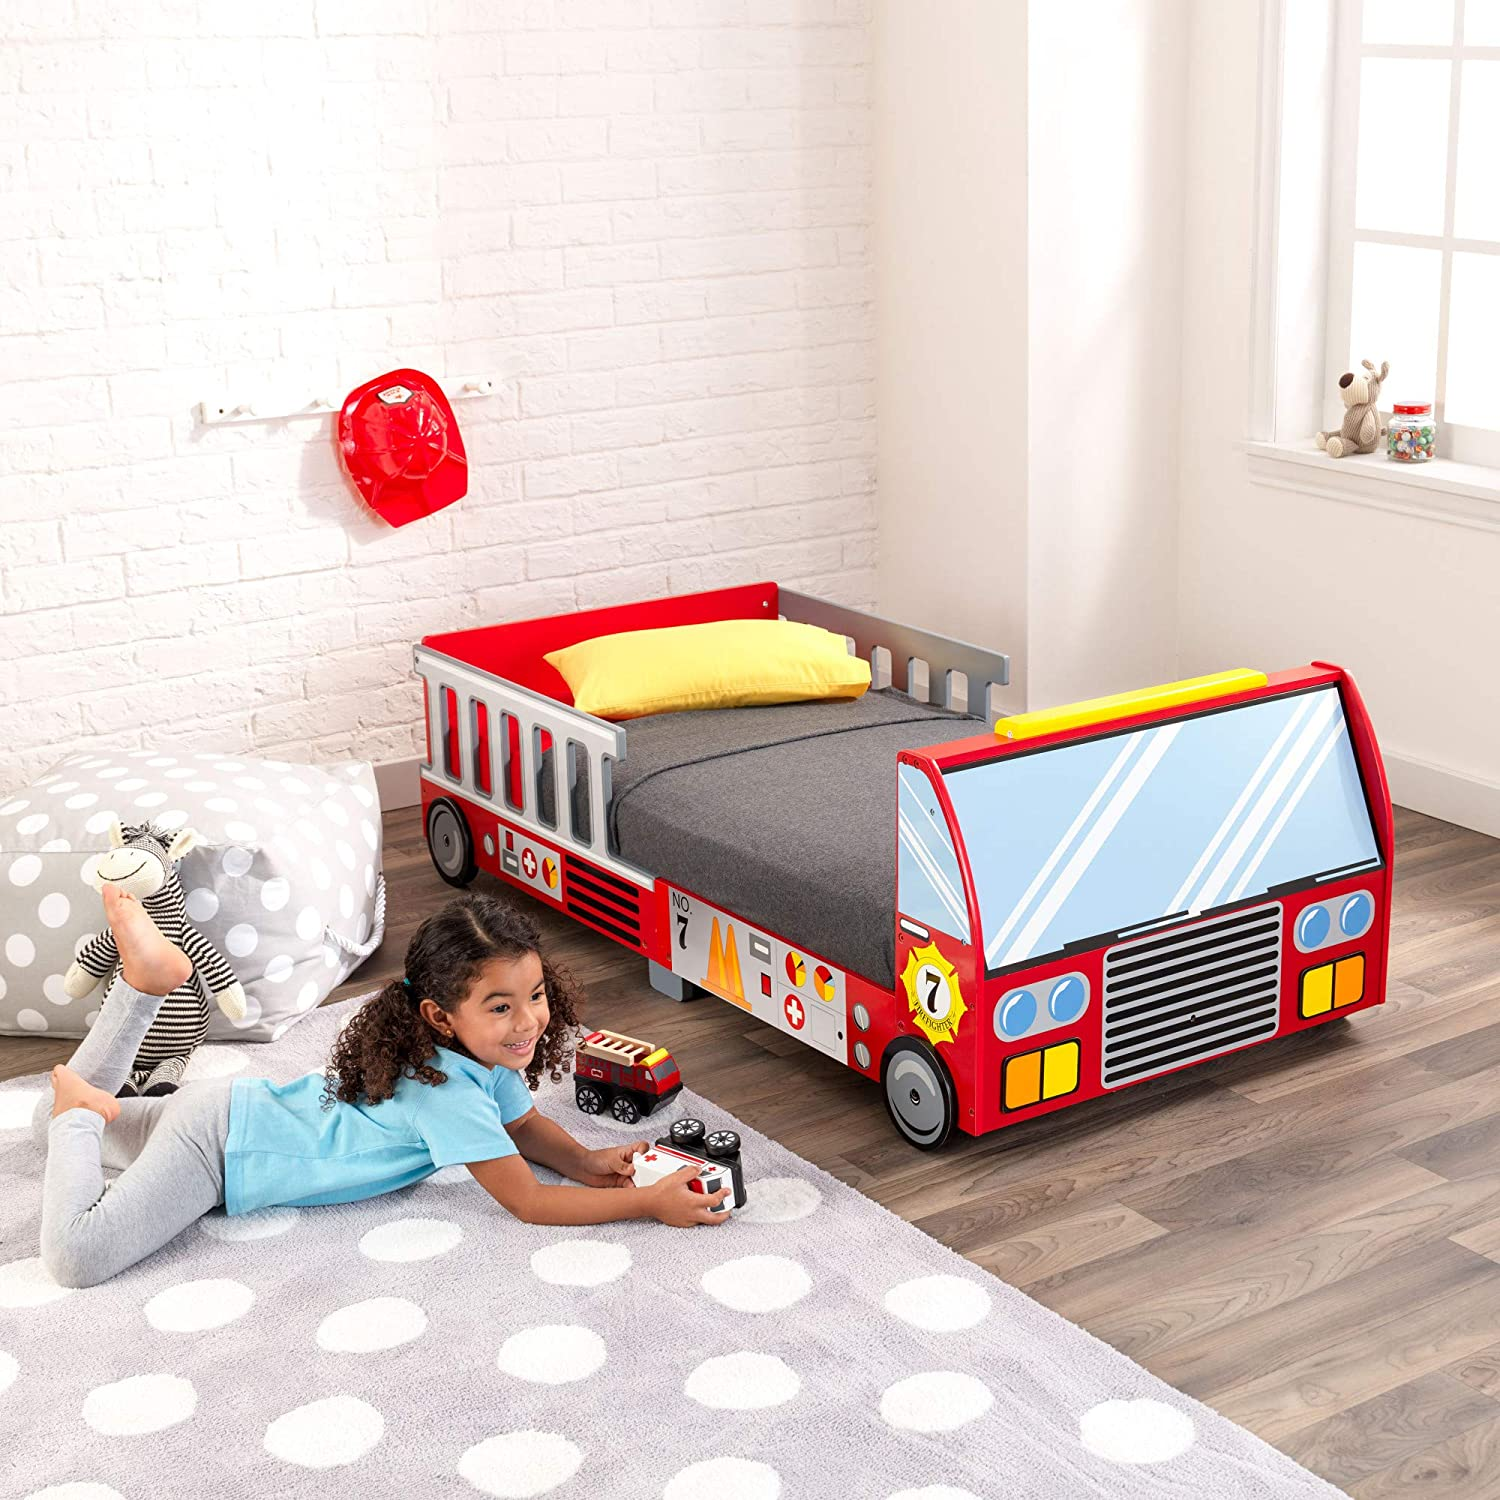 Full Review of KidKraft Fire Truck Toddler Bed 3